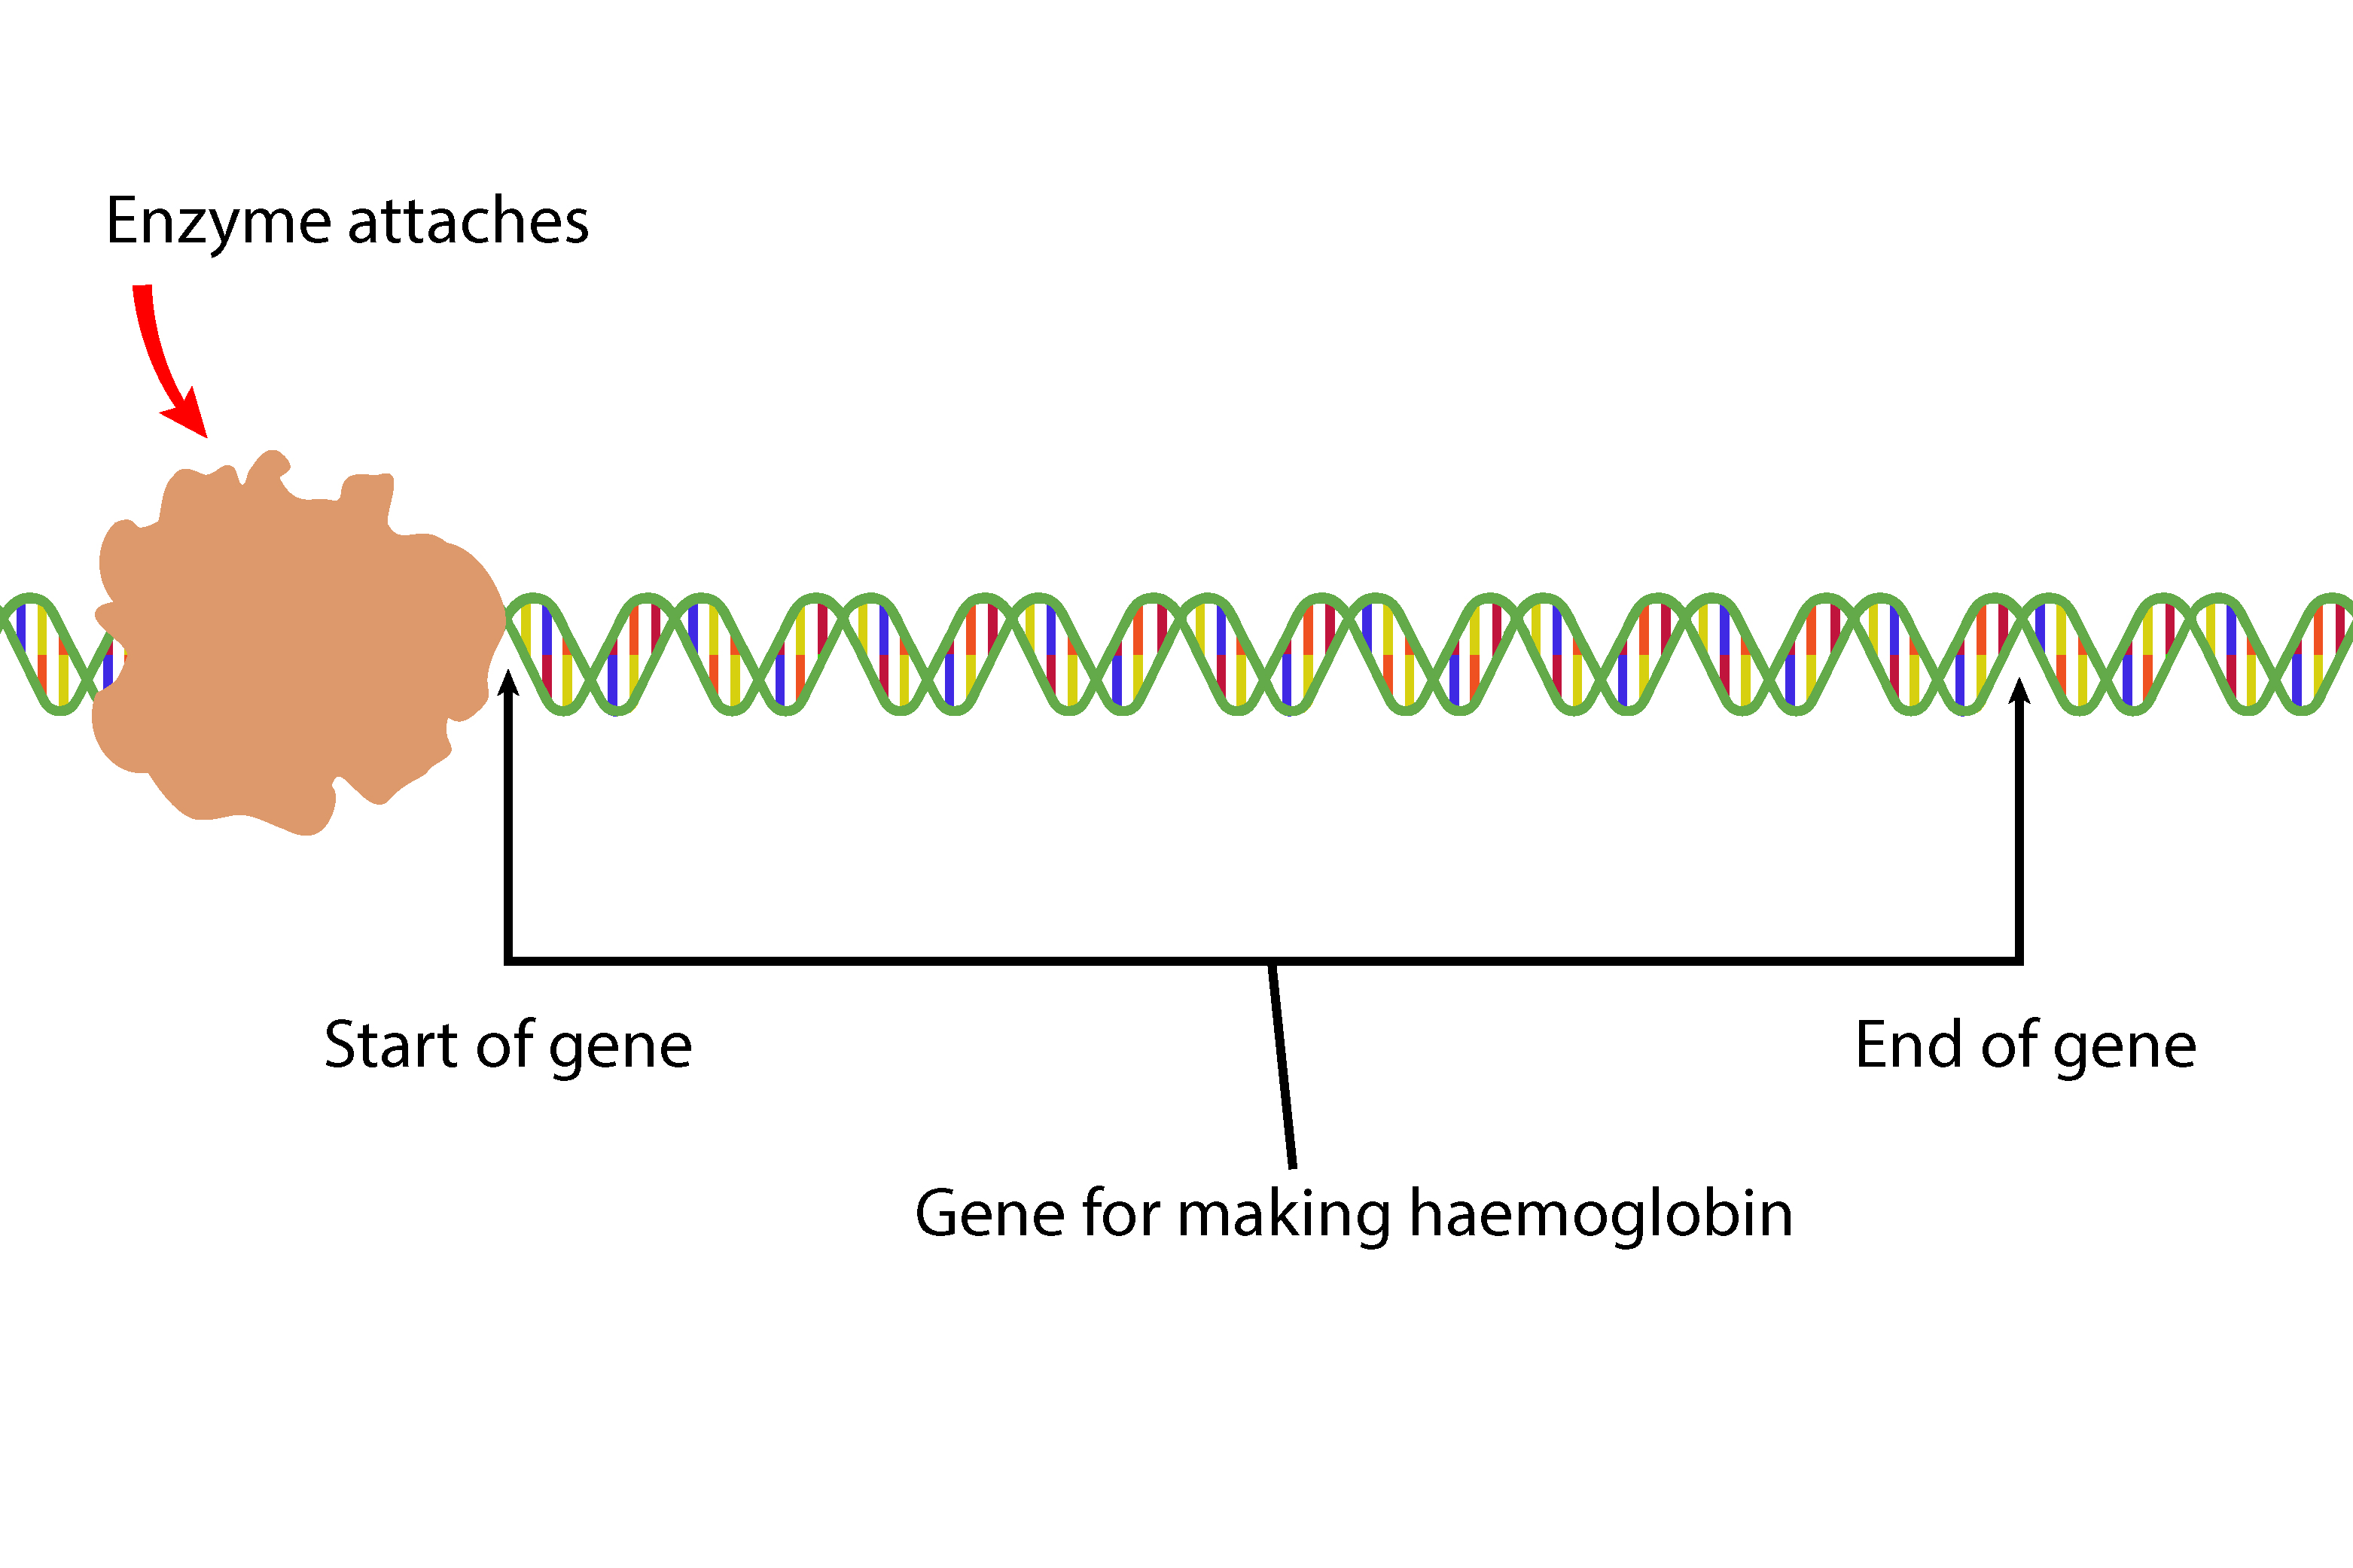 Enzymes attach to a DNA strand but at the start of the haemoglobin gene segment ready to read